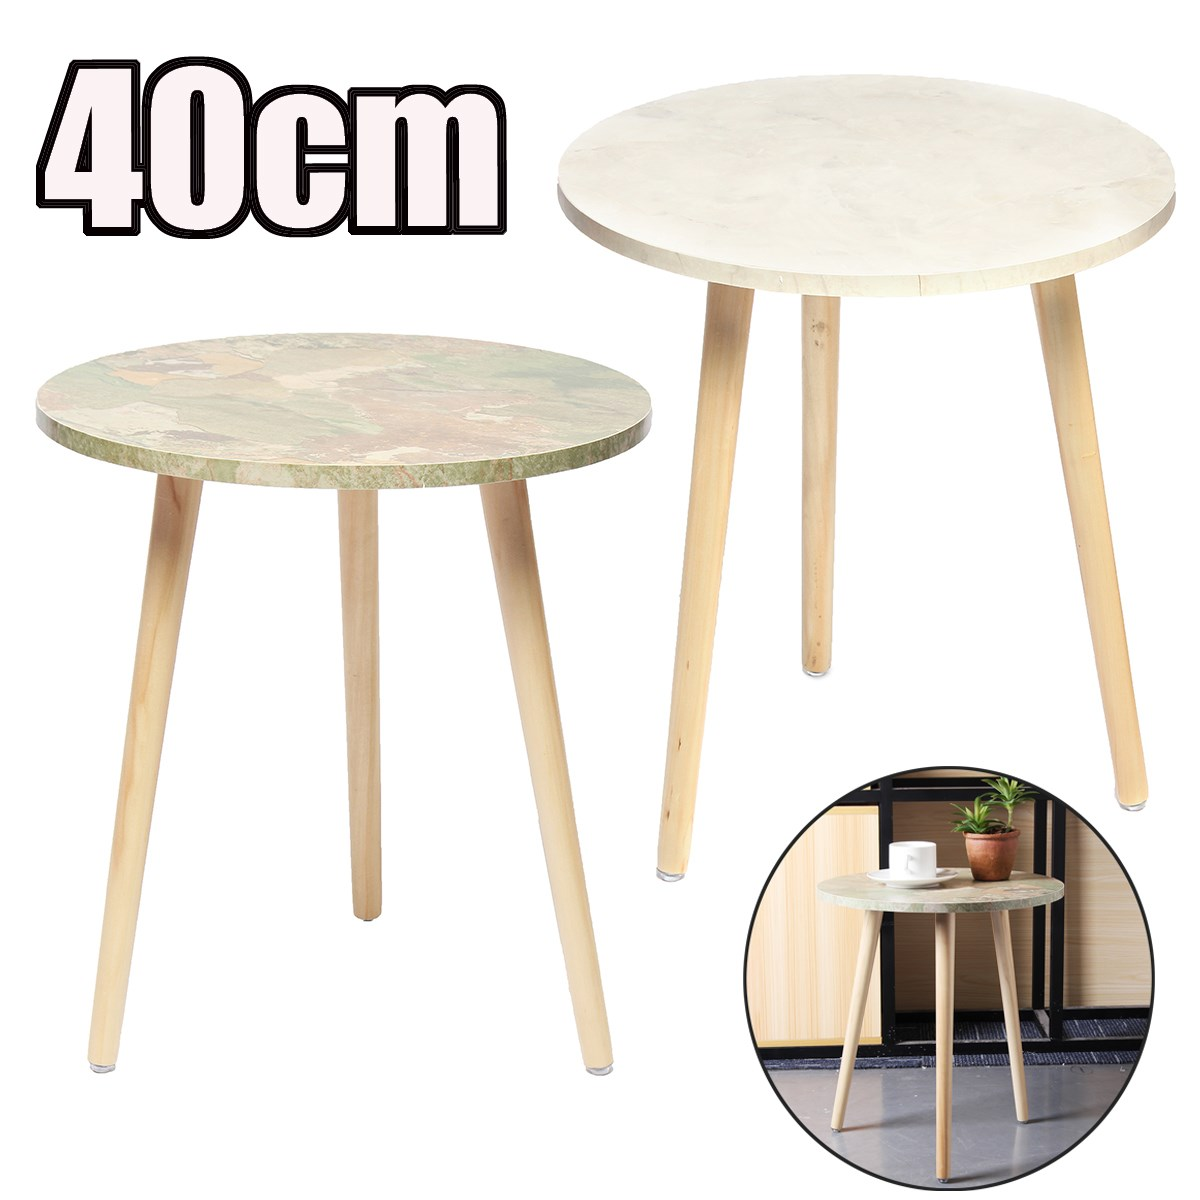 fashion round table European style coffee table side living room elegant solid wood furniture set colorful coffee table simple